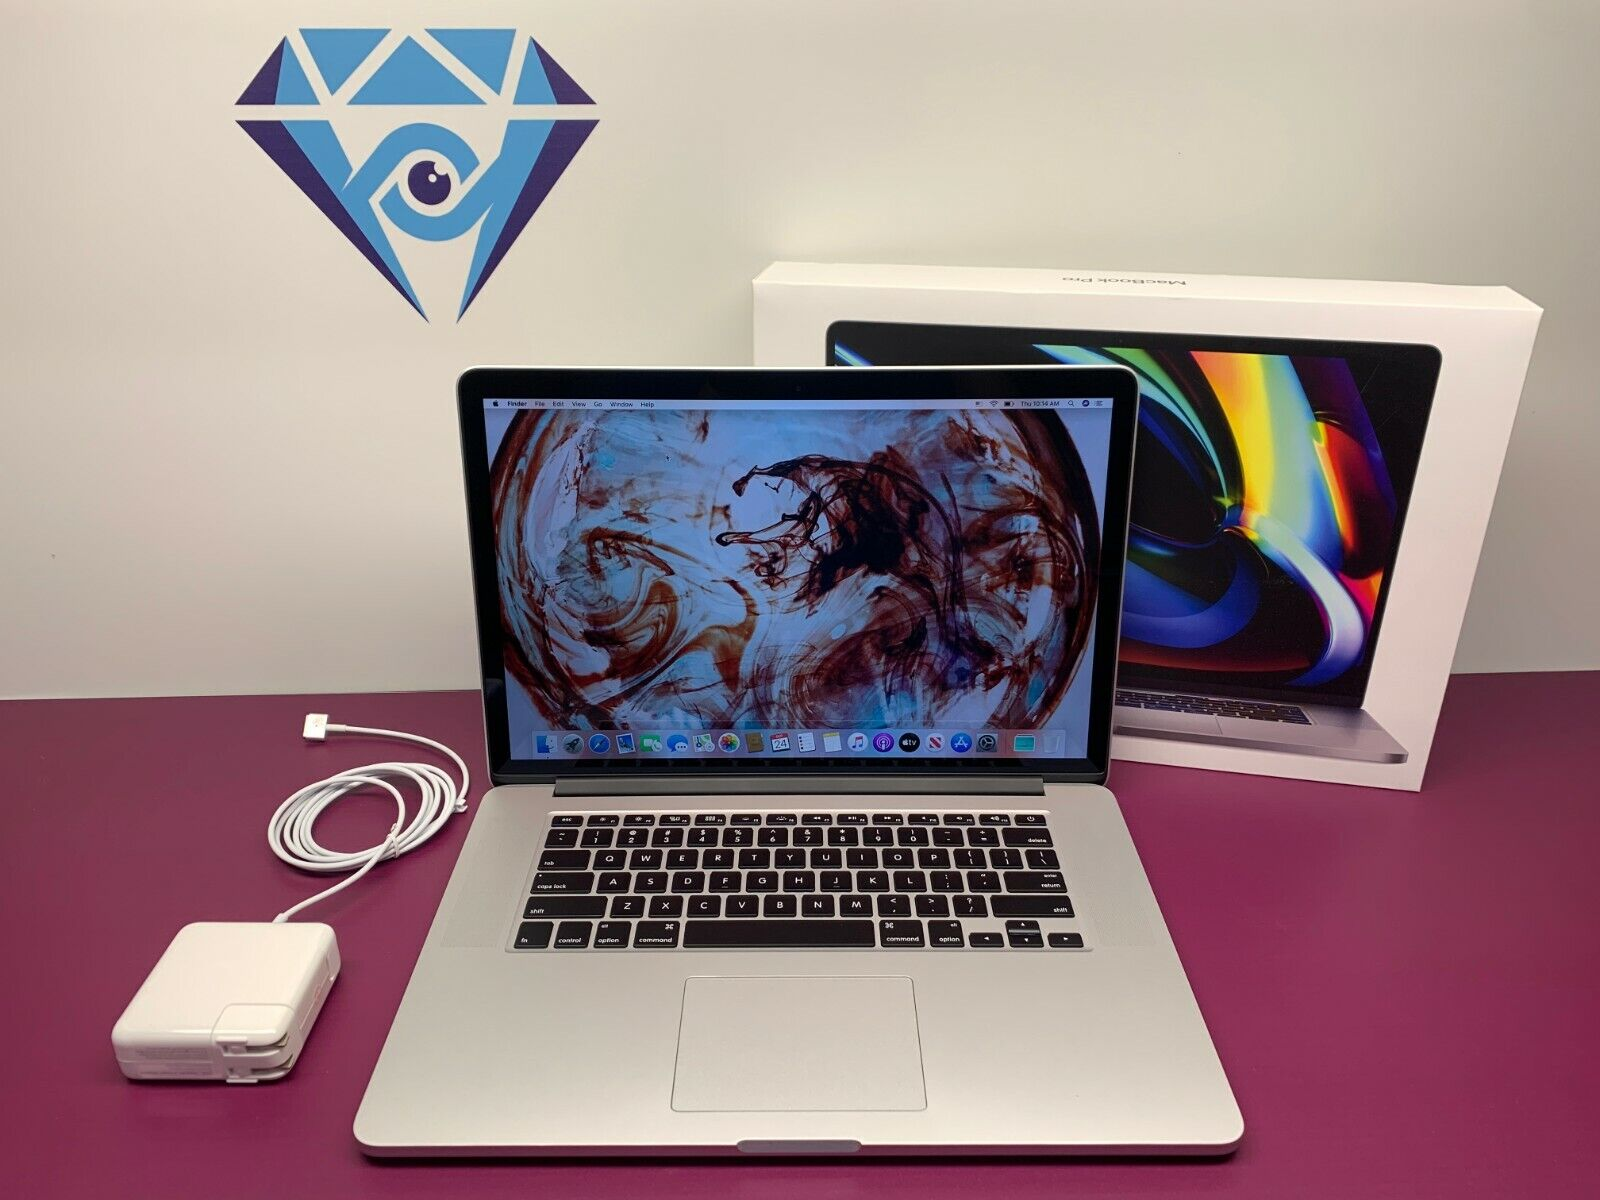 Apple MacBook Pro 15 inch * QUAD Core i7 3.4Ghz * 16GB RAM * 2TB SSD * OS2019. Buy it now for 887.00